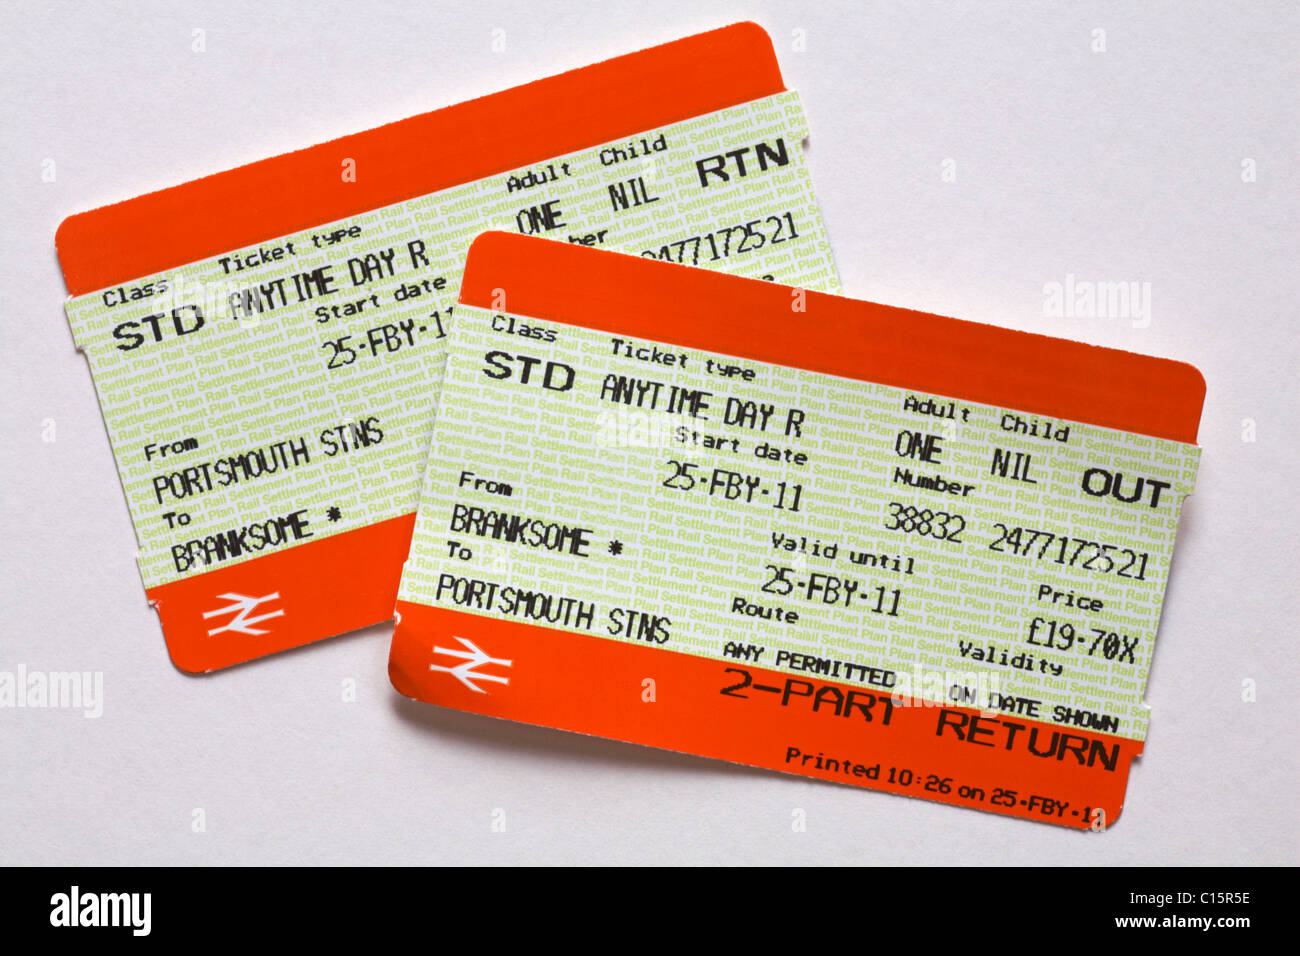 return train tickets - outward ticket on top - Stock Image